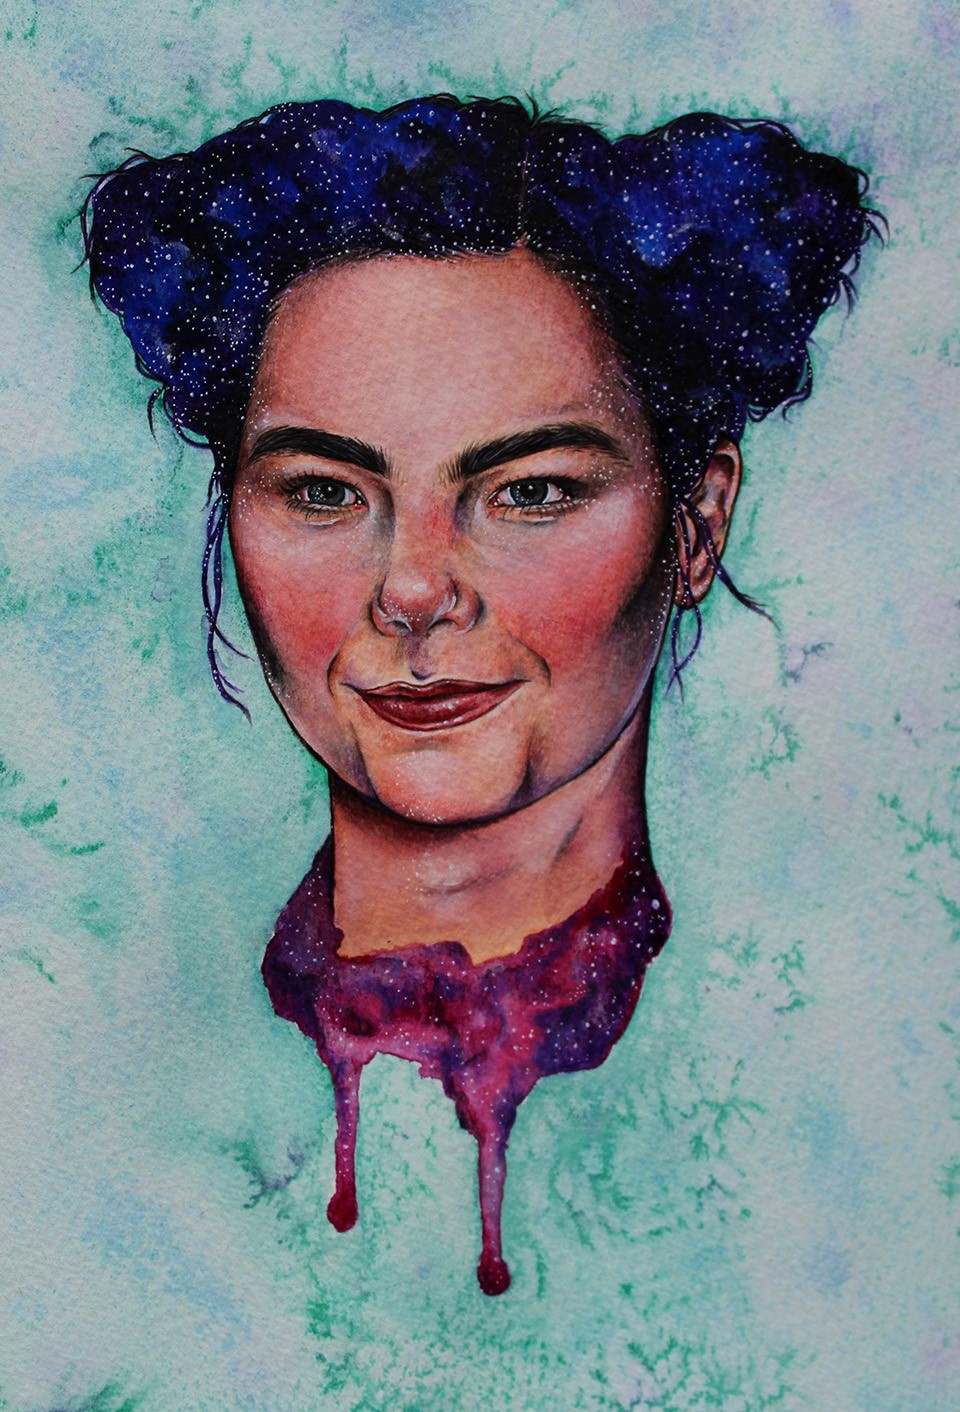 Bjork Fan Art by Illustrator Holly Khraibani